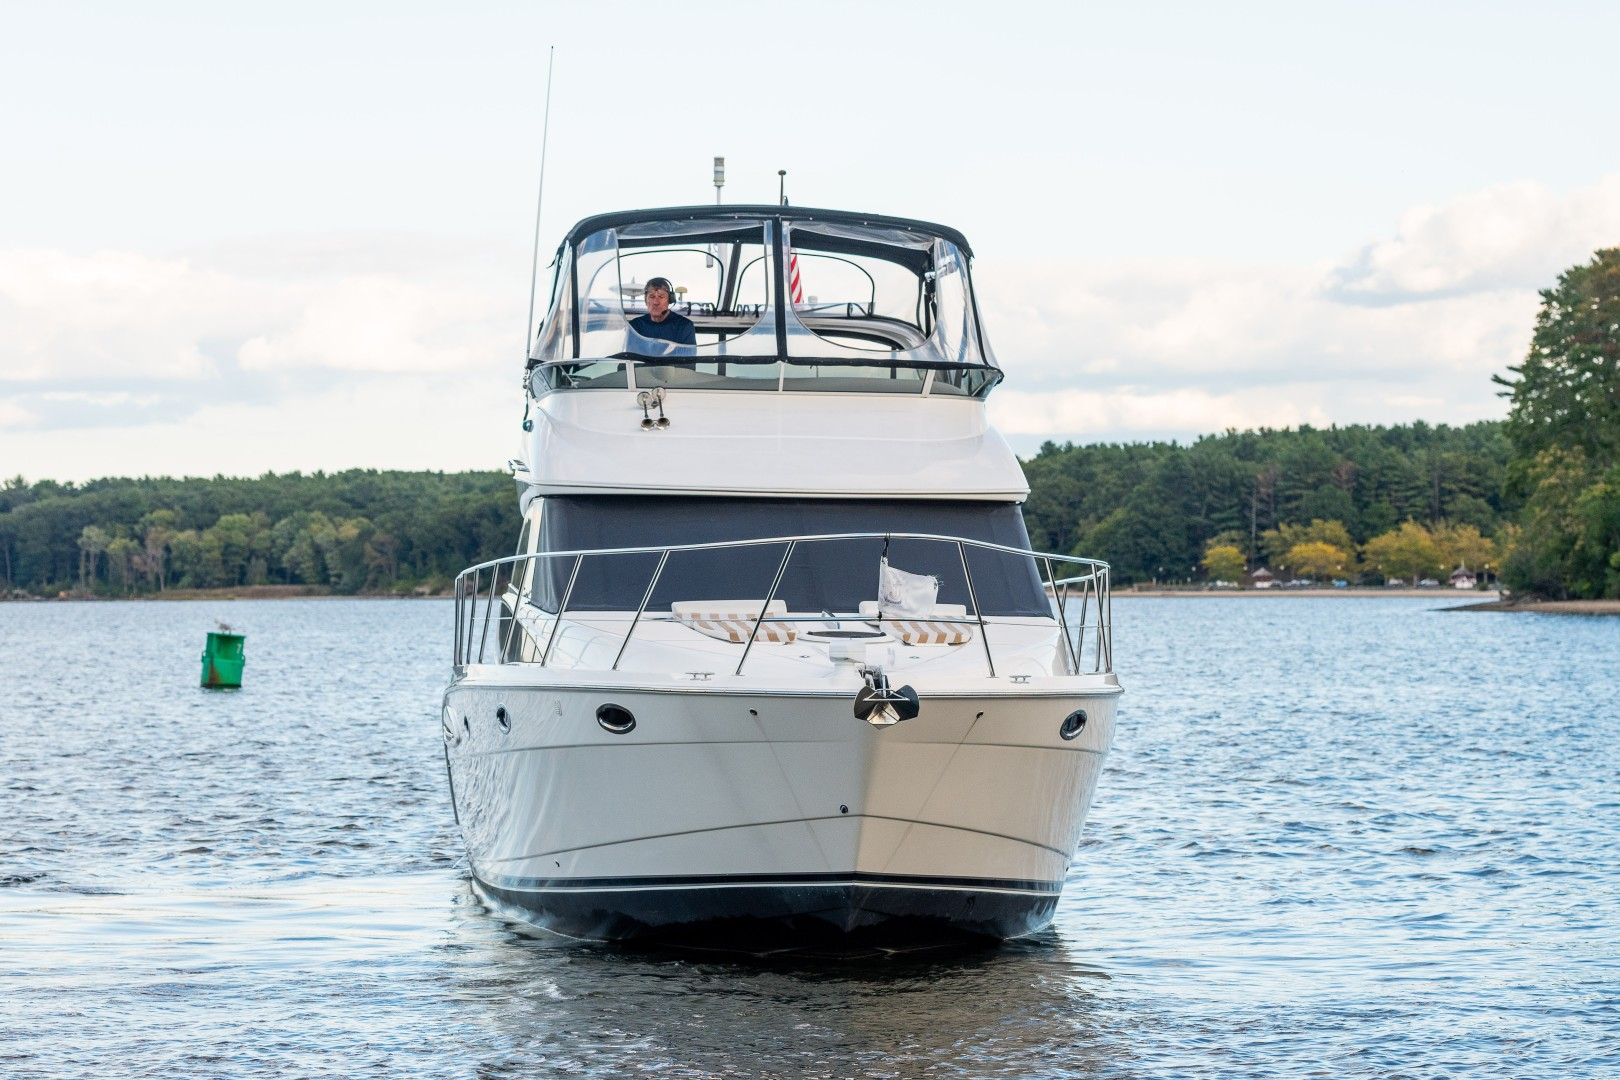 Meridian 39 - Out'n About - Exterior Profile